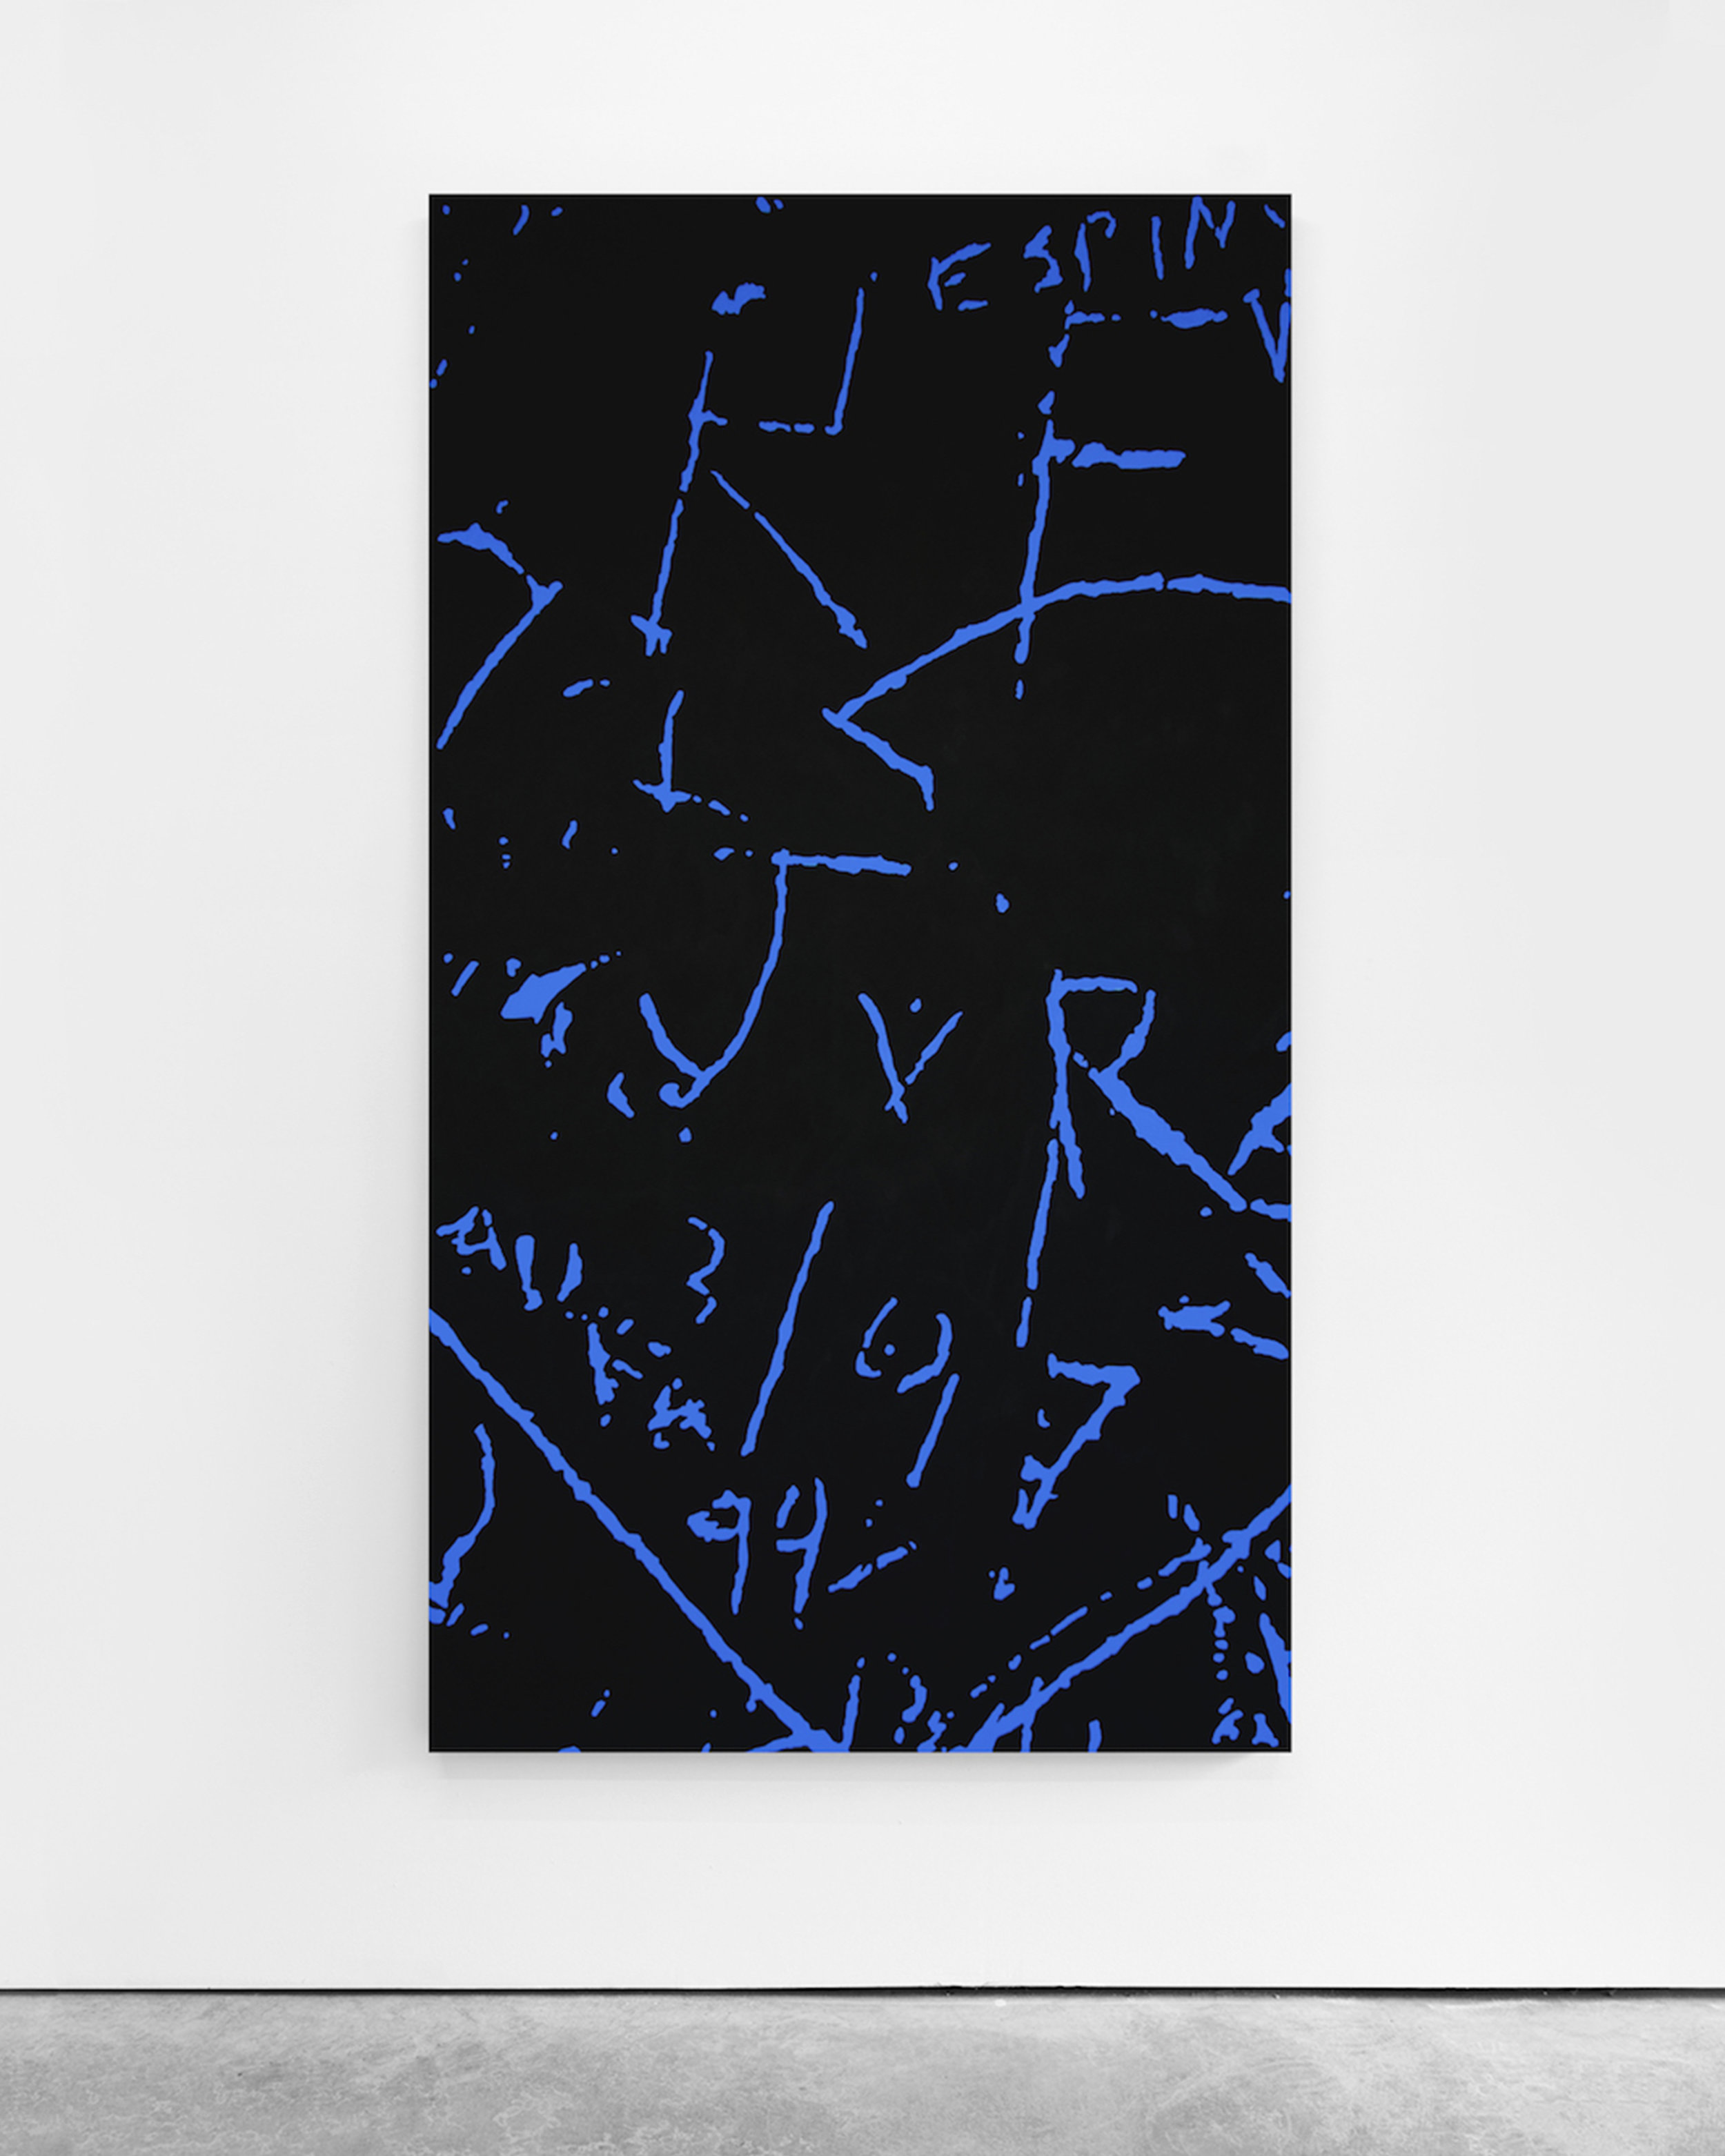 Pedro Matos  Untitled (JxR) , 2018 Acrylic enamel on canvas 180 x 100 cm